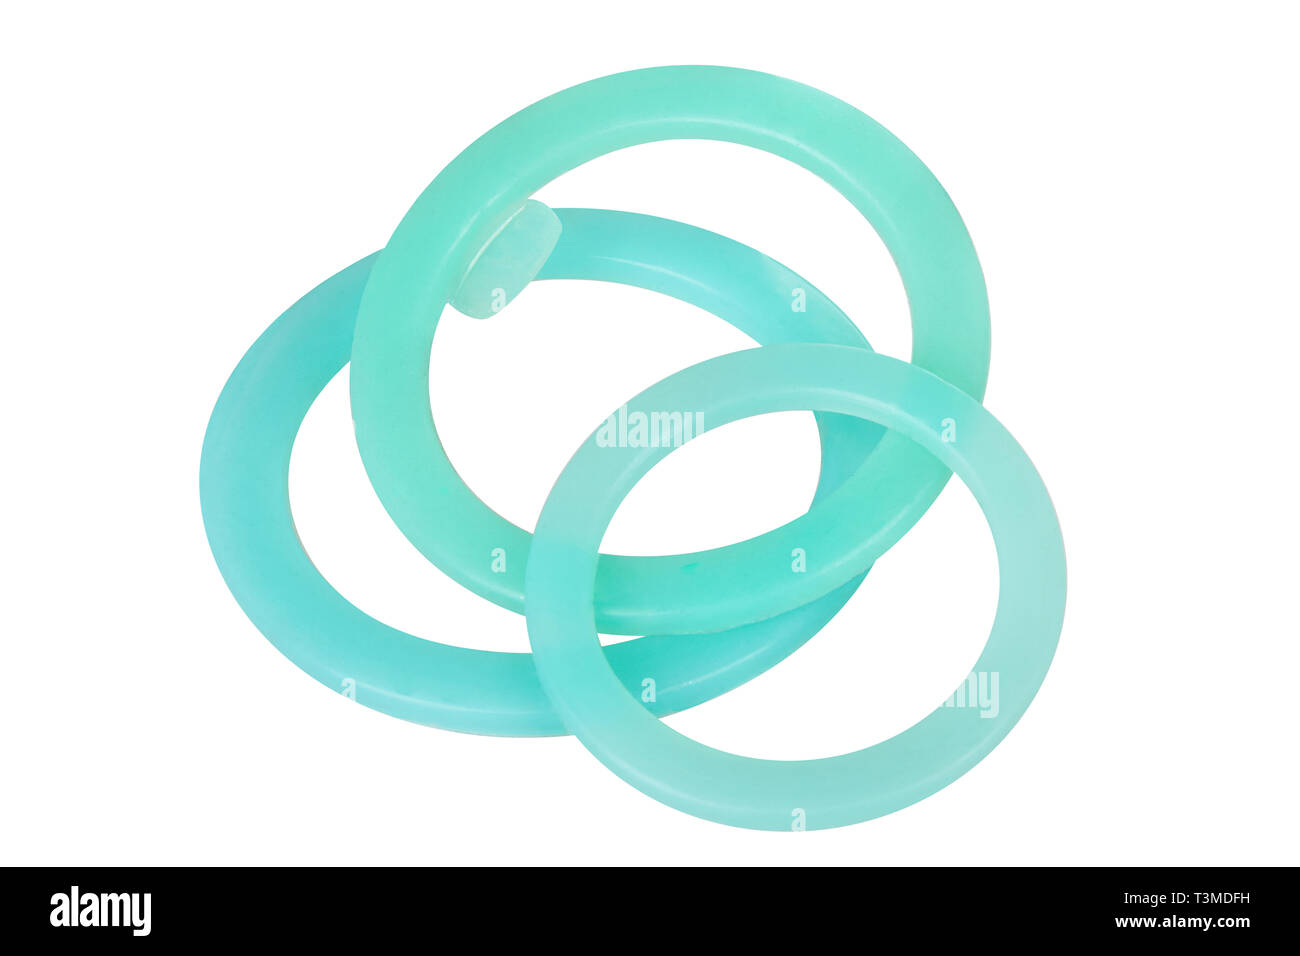 Rubber Gasket Stock Photos & Rubber Gasket Stock Images - Alamy